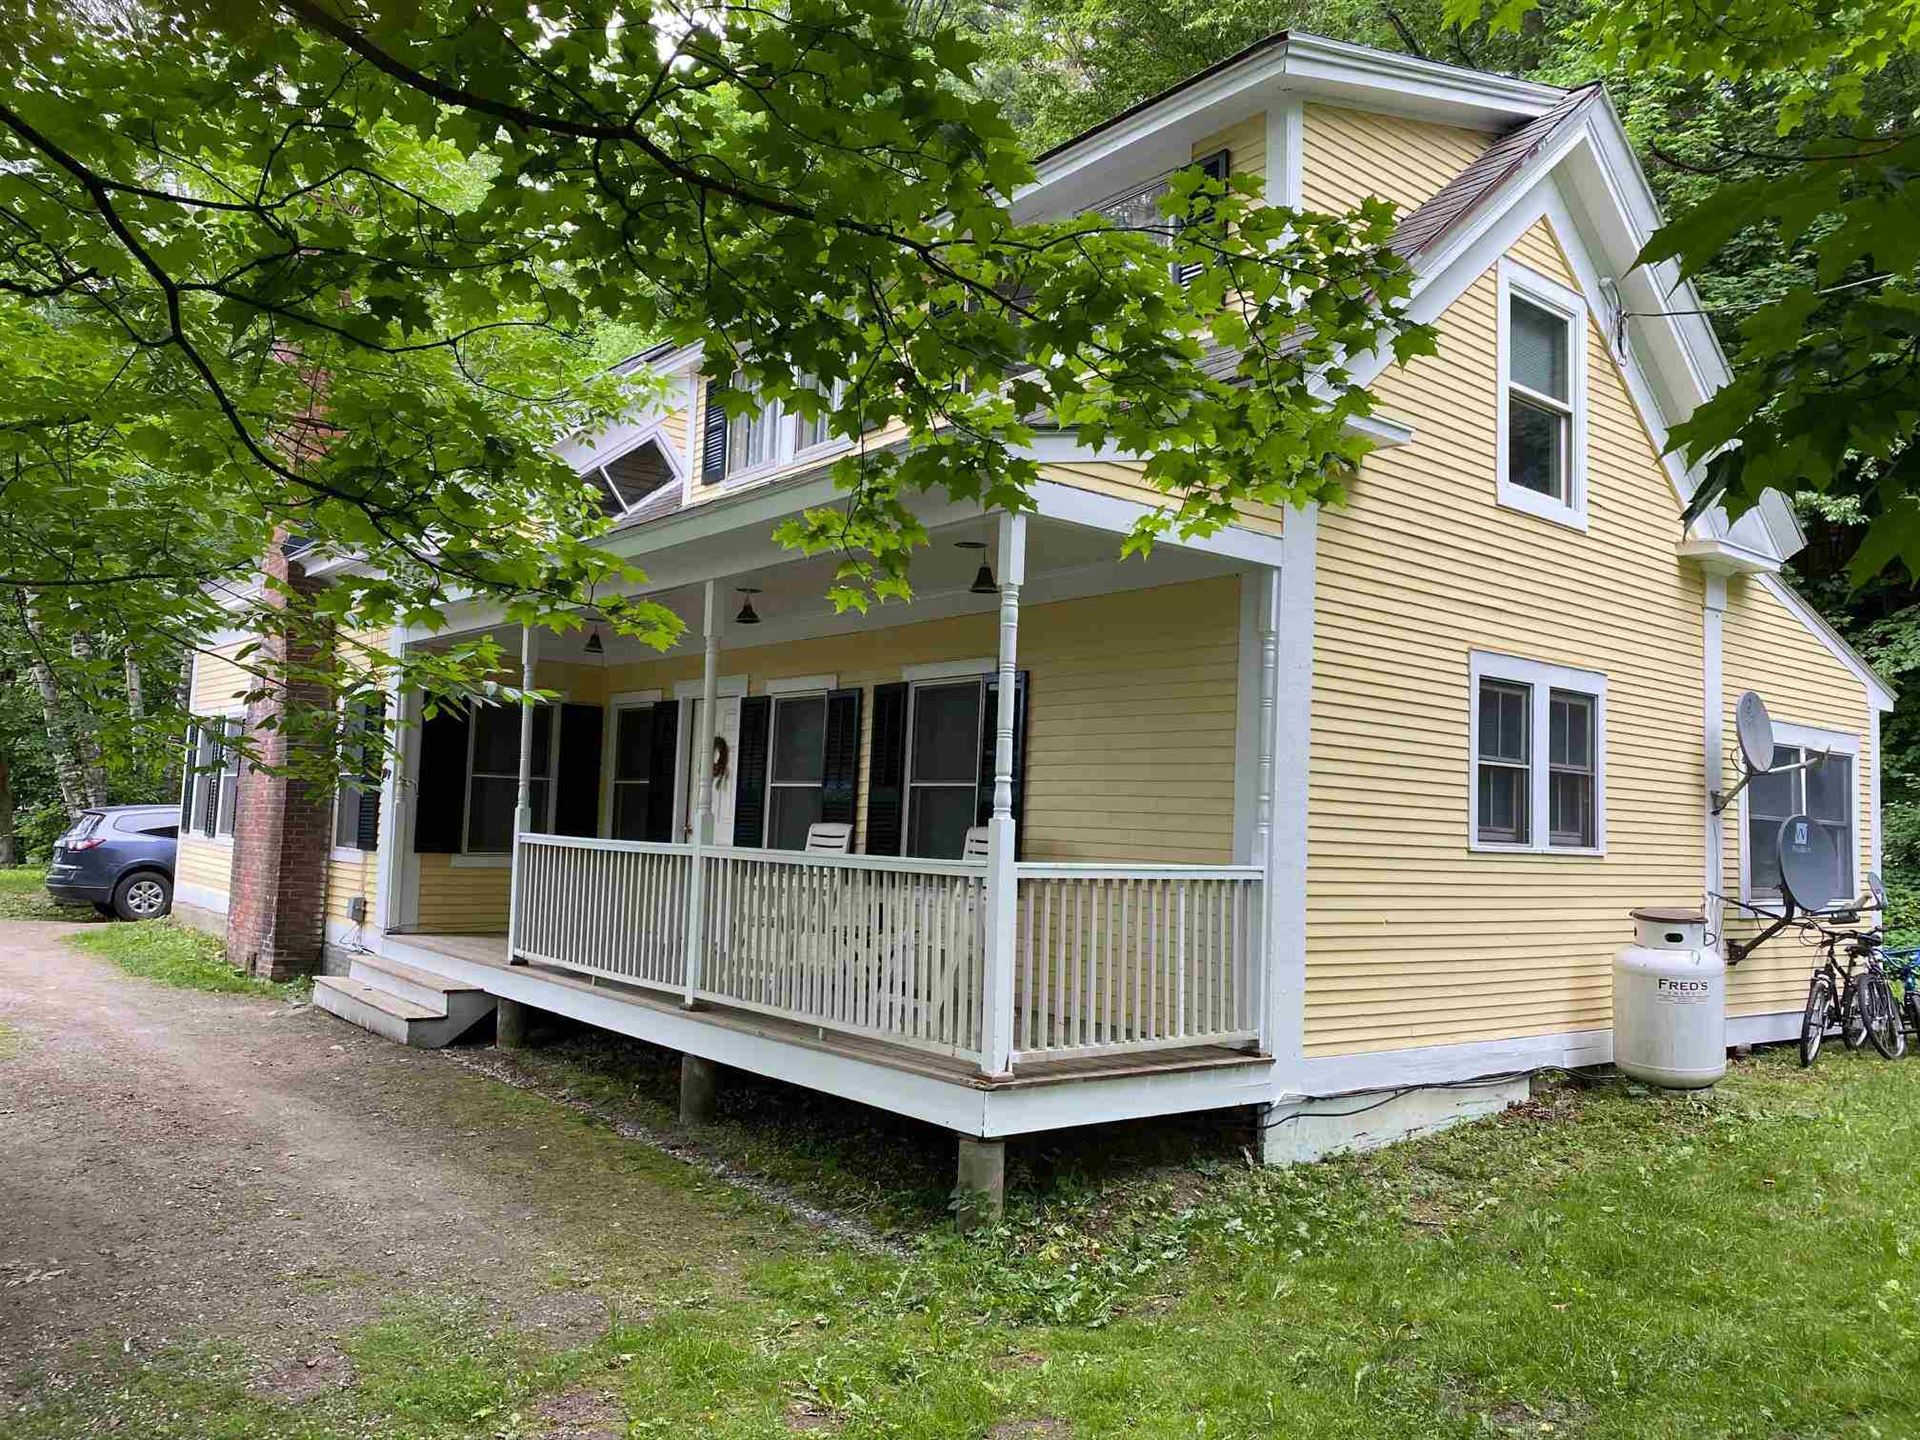 Photo of 856 Pucker Street, Stowe, VT 05672 (MLS # 4858698)